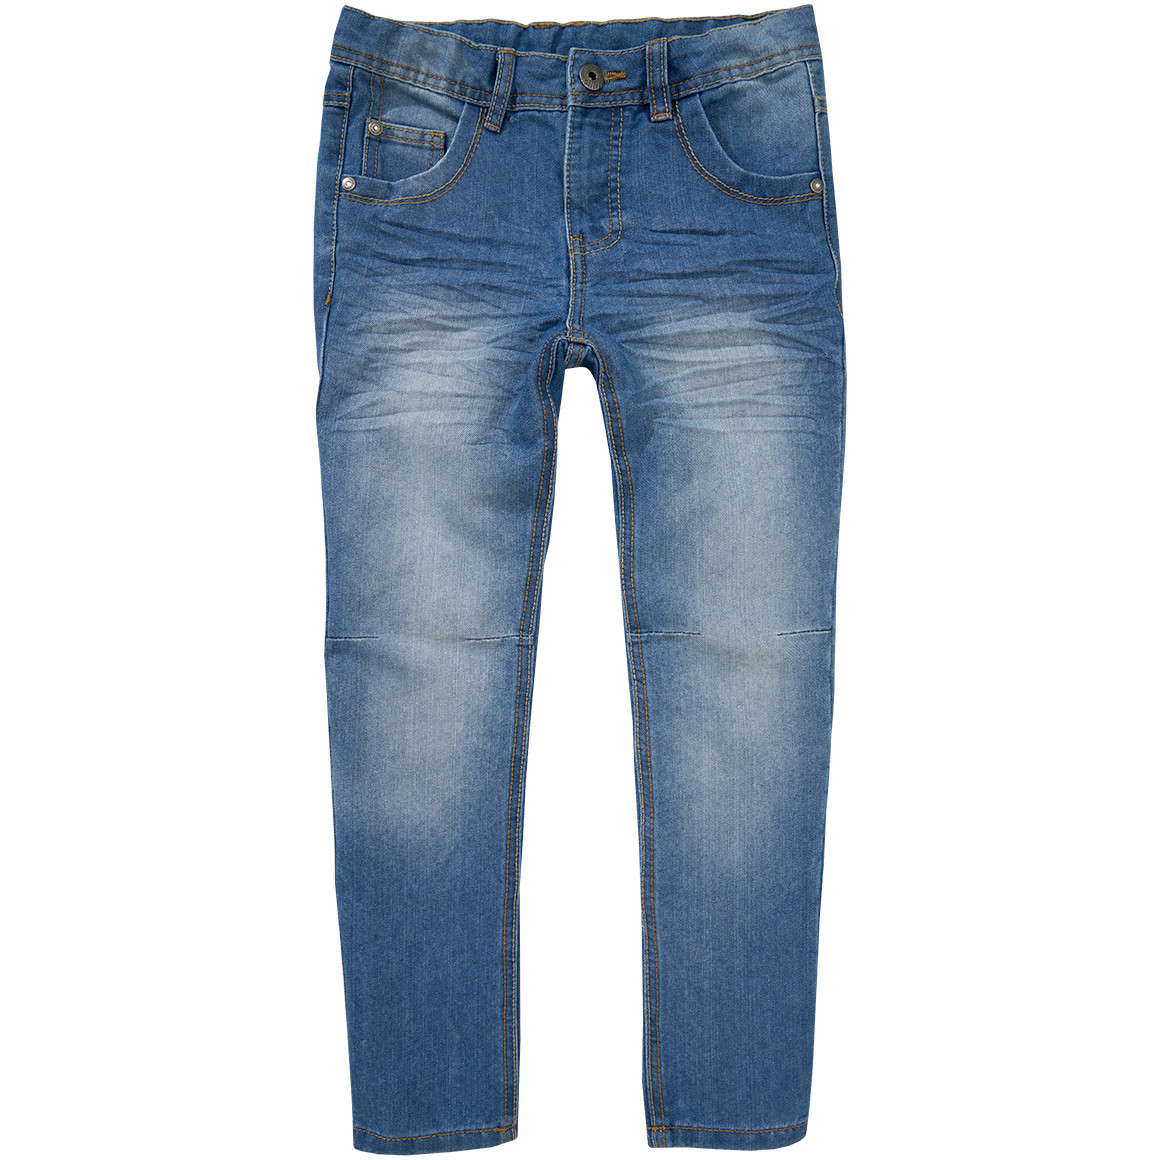 Jungen Exxtra Size Jeans mit Used Waschung